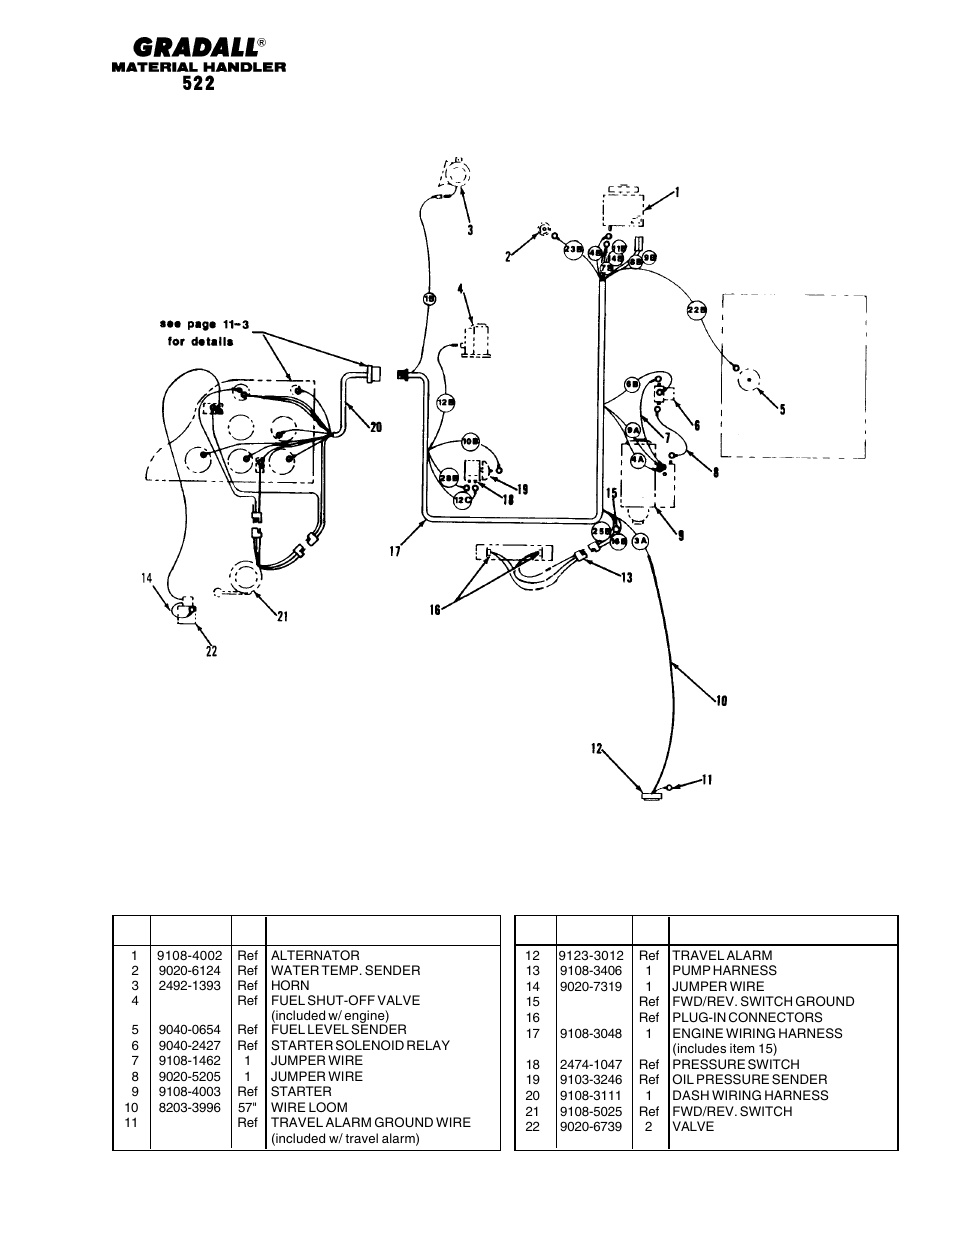 medium resolution of section 11 electrical electrical engine wiring 522 gradall 524 parts manual user manual page 200 312